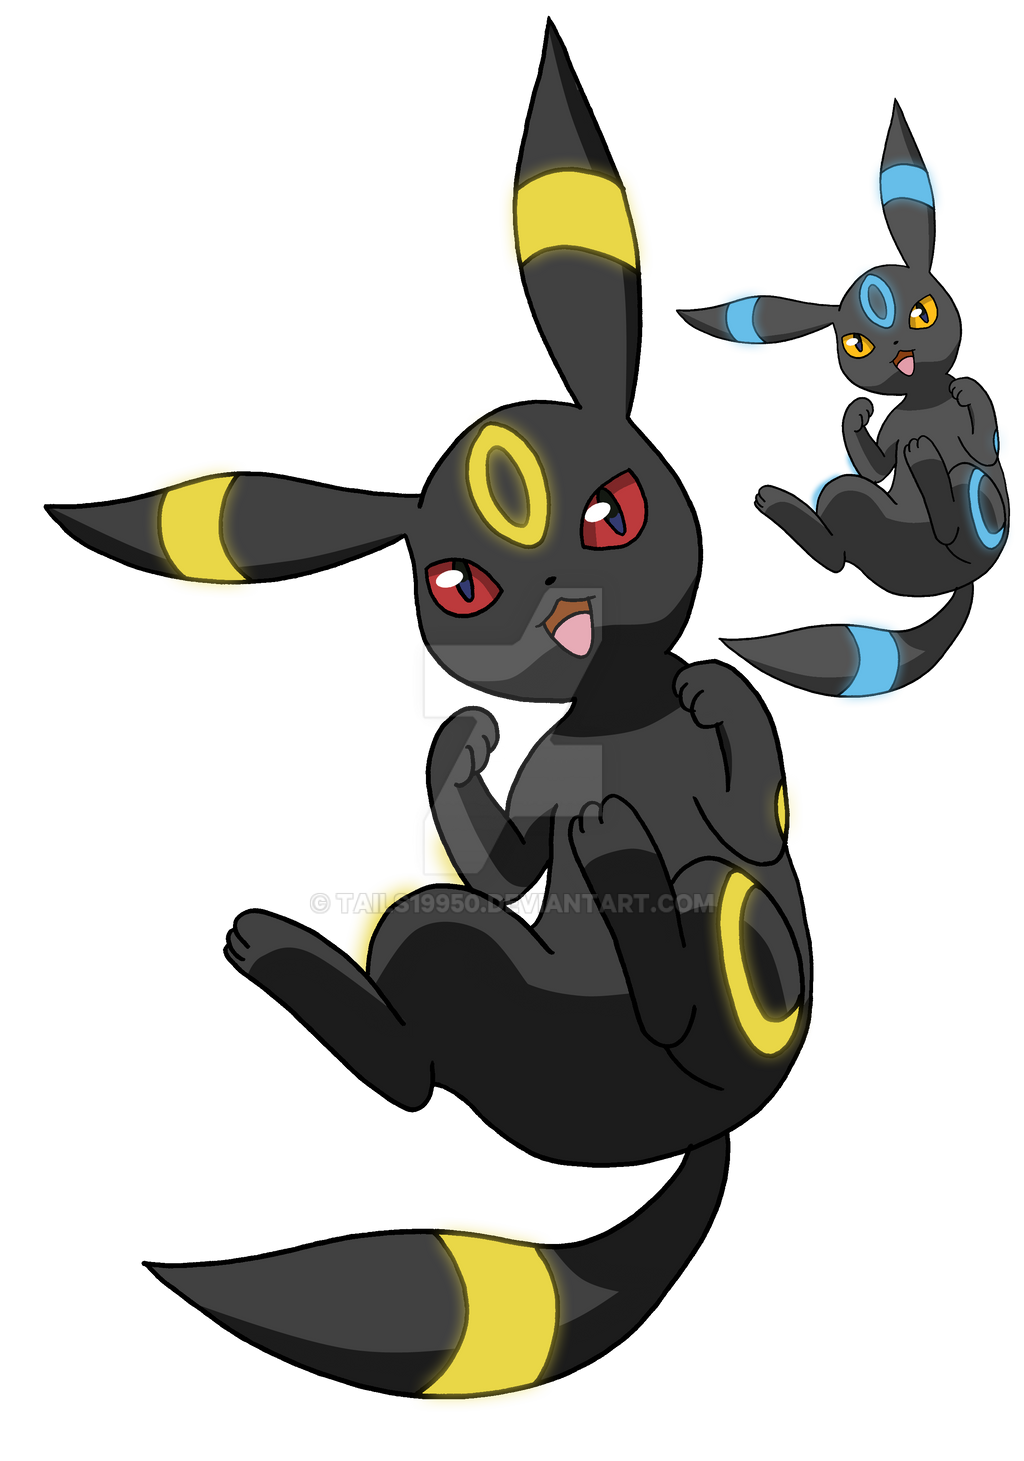 197 - Umbreon - Art v 3 by Tails19950Umbreon Artwork